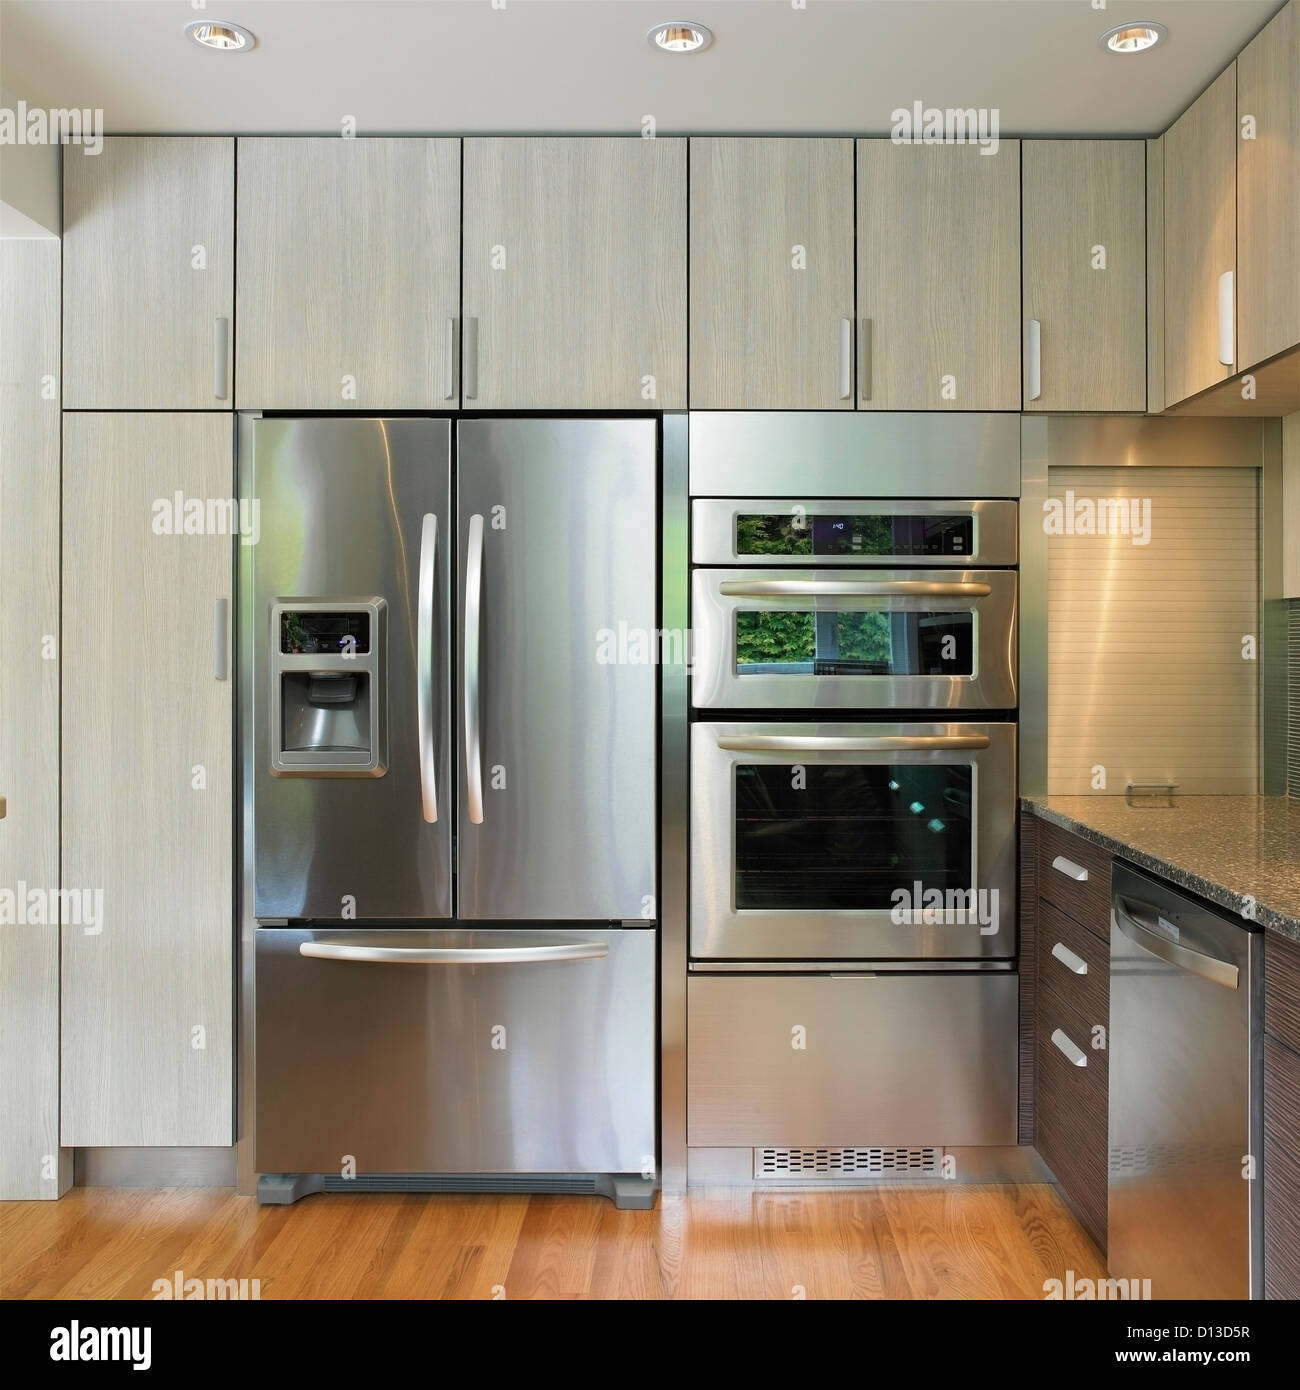 Kitchen Wall Featuring Built In Fridge And Wall Oven Victoria Stock Photo 52321971 Alamy